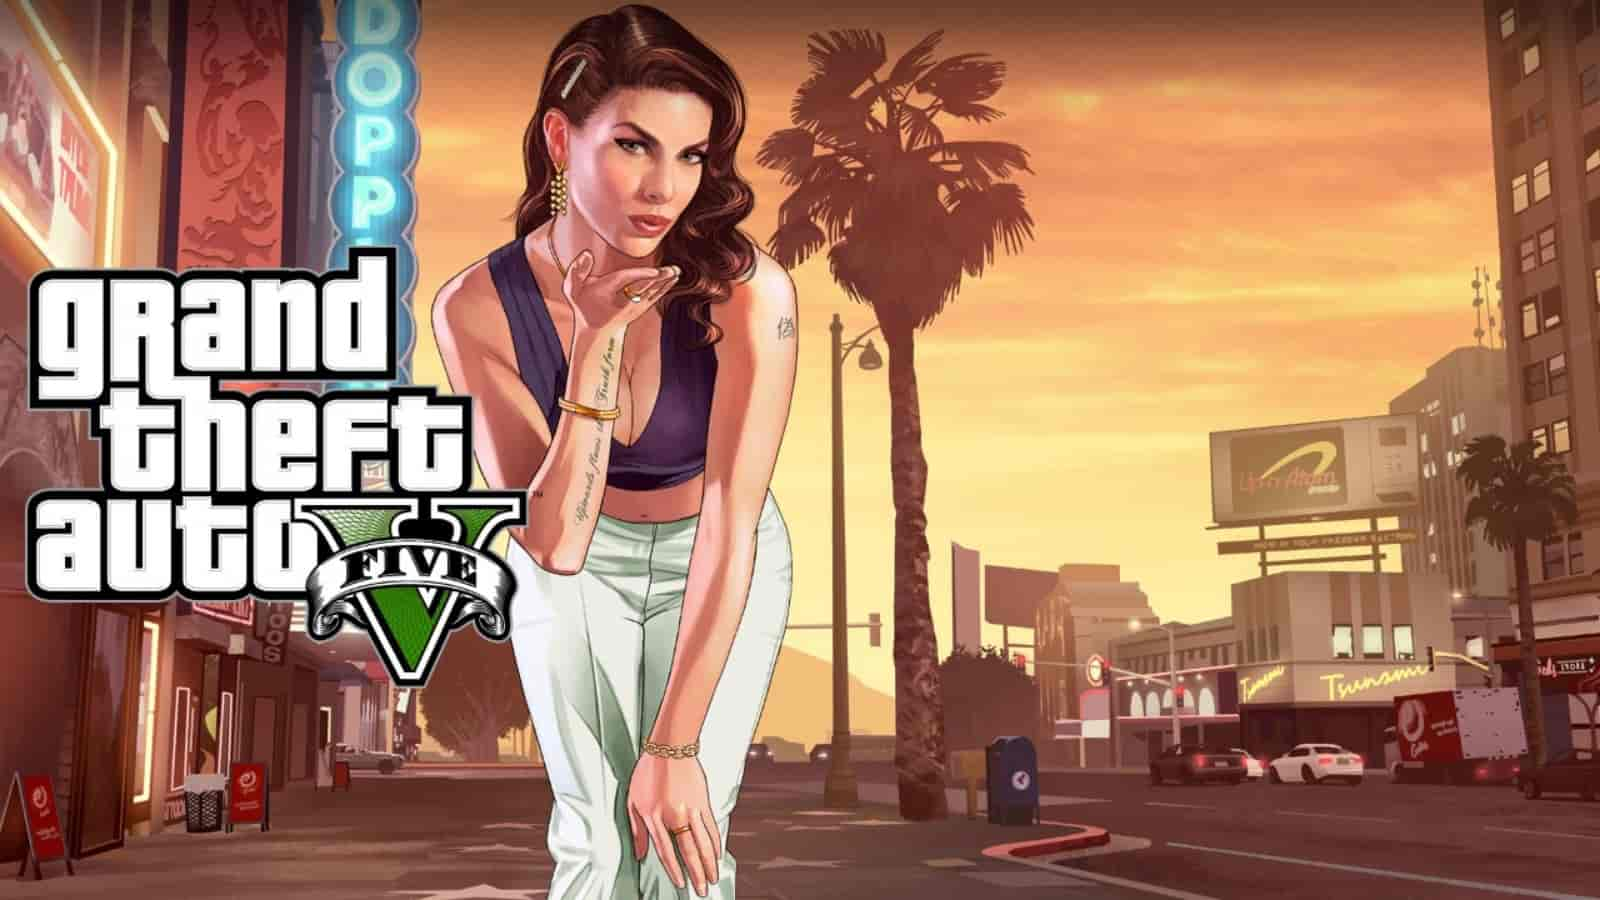 GTA 5 Cheat codes: Full list of Cheat Codes for PC and PS4